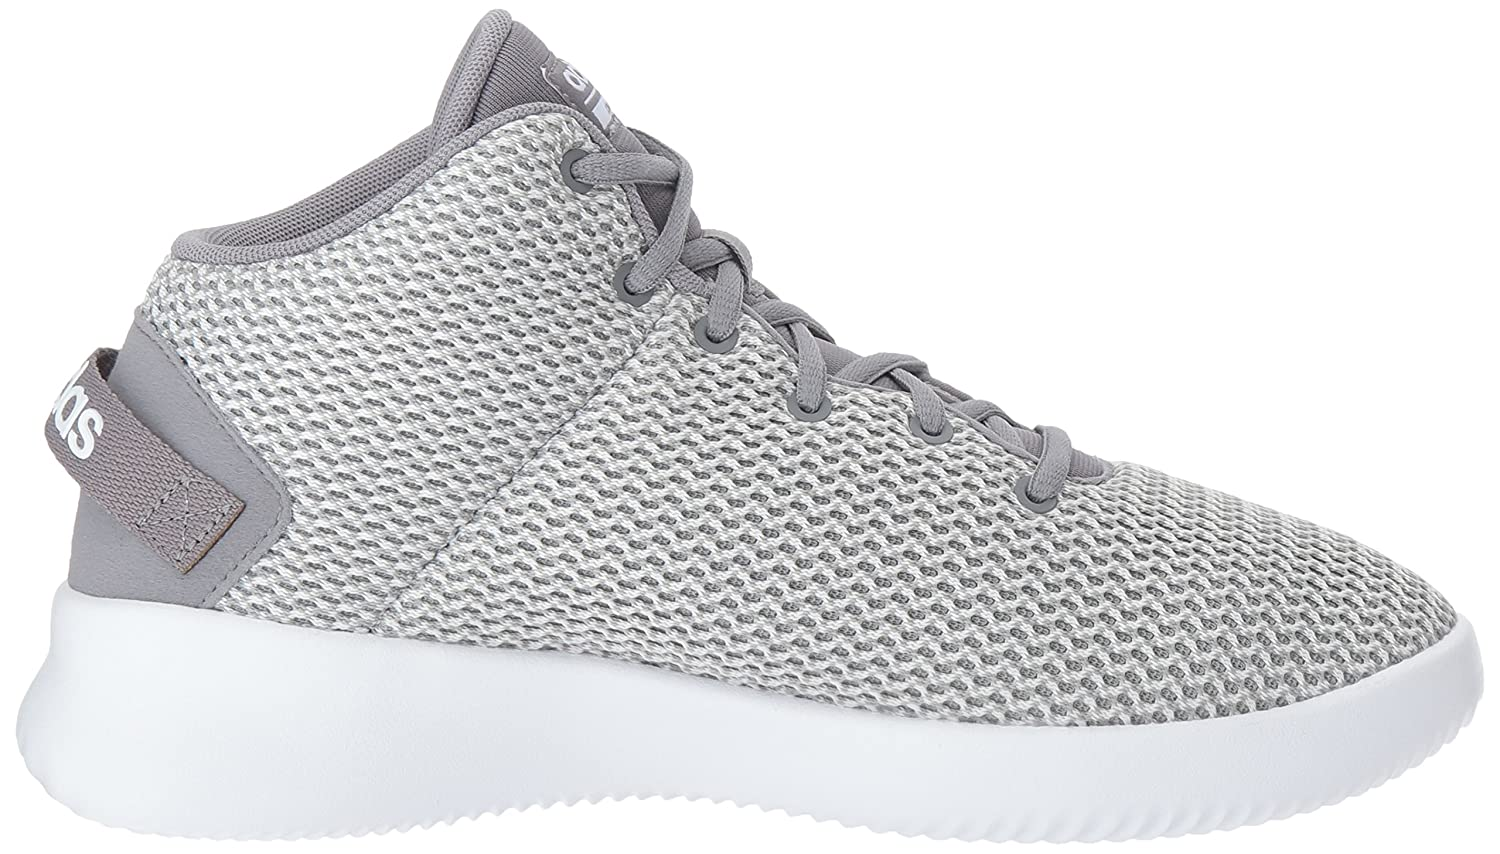 Gentleman/Lady adidas Kids' Refresh Cf Refresh Kids' Mid Basketball Shoe flagship store New style Breathable shoes AA86349 c7963b